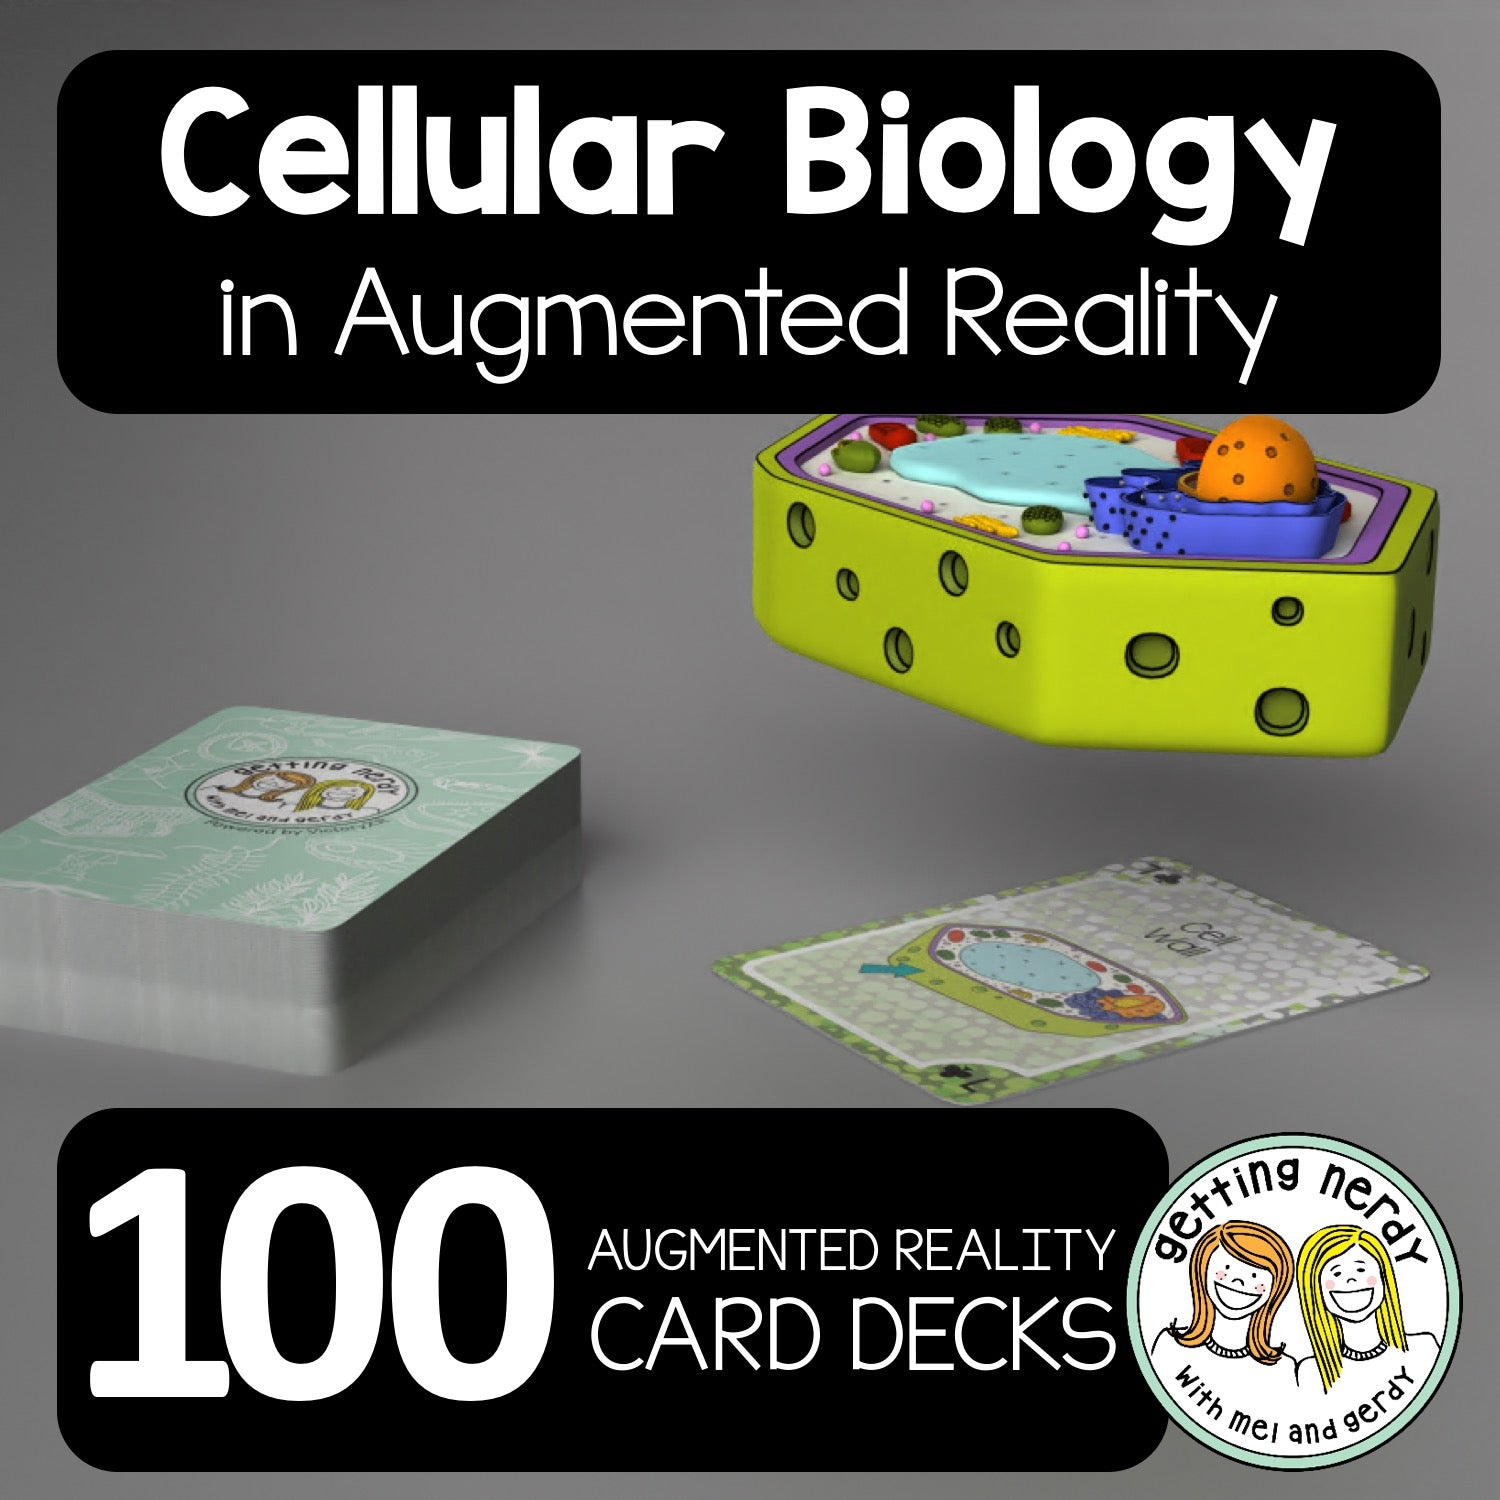 'Getting Nerdy' Cellular Biology Augmented Reality Card Deck - 100X Bundle